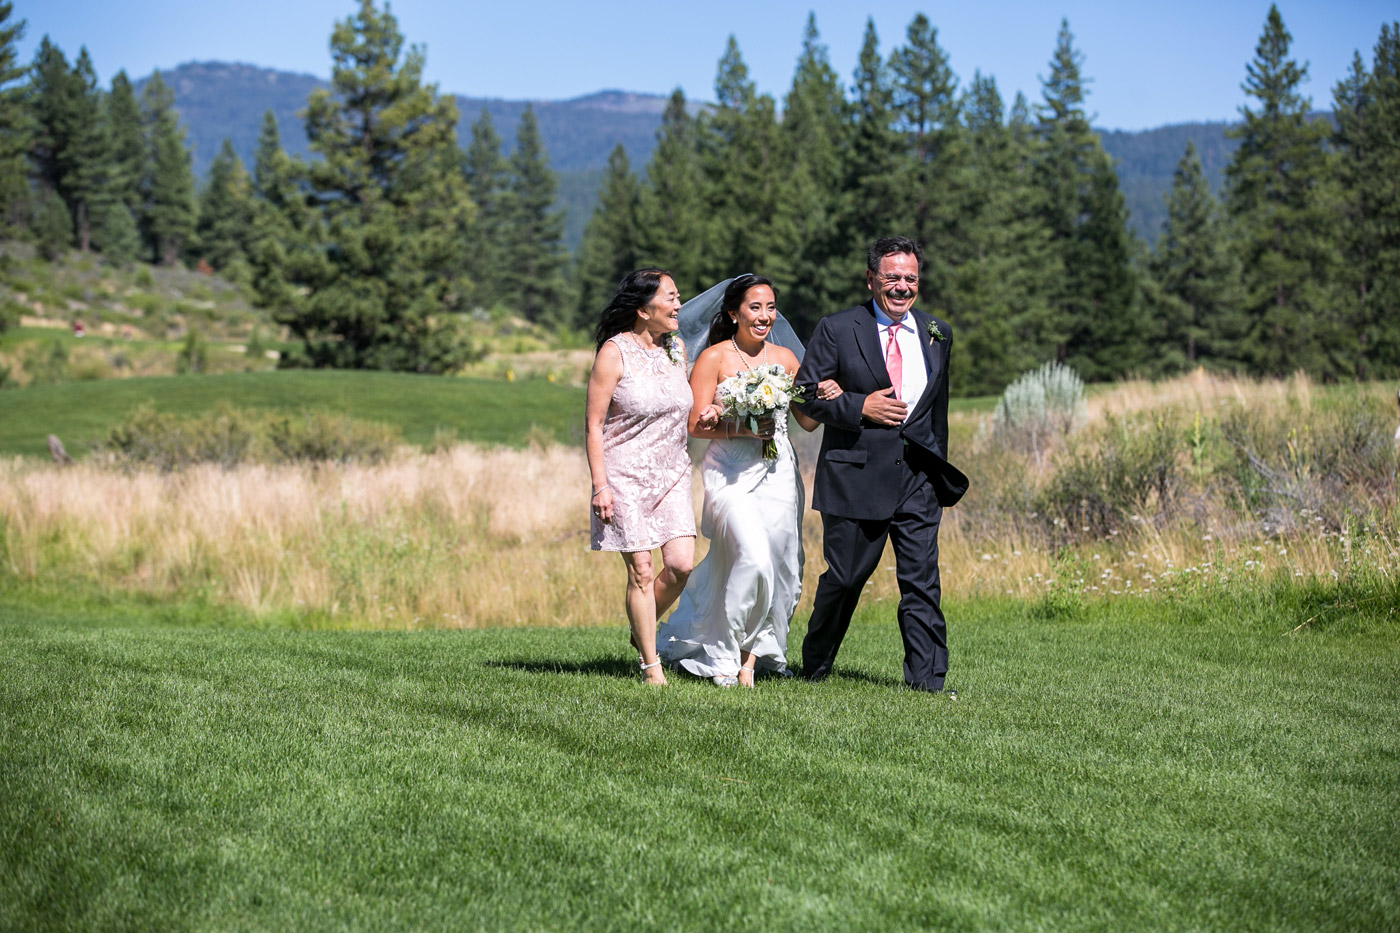 Lake-tahoe-weddings-Lahontan-Golf-Club-weddings-33